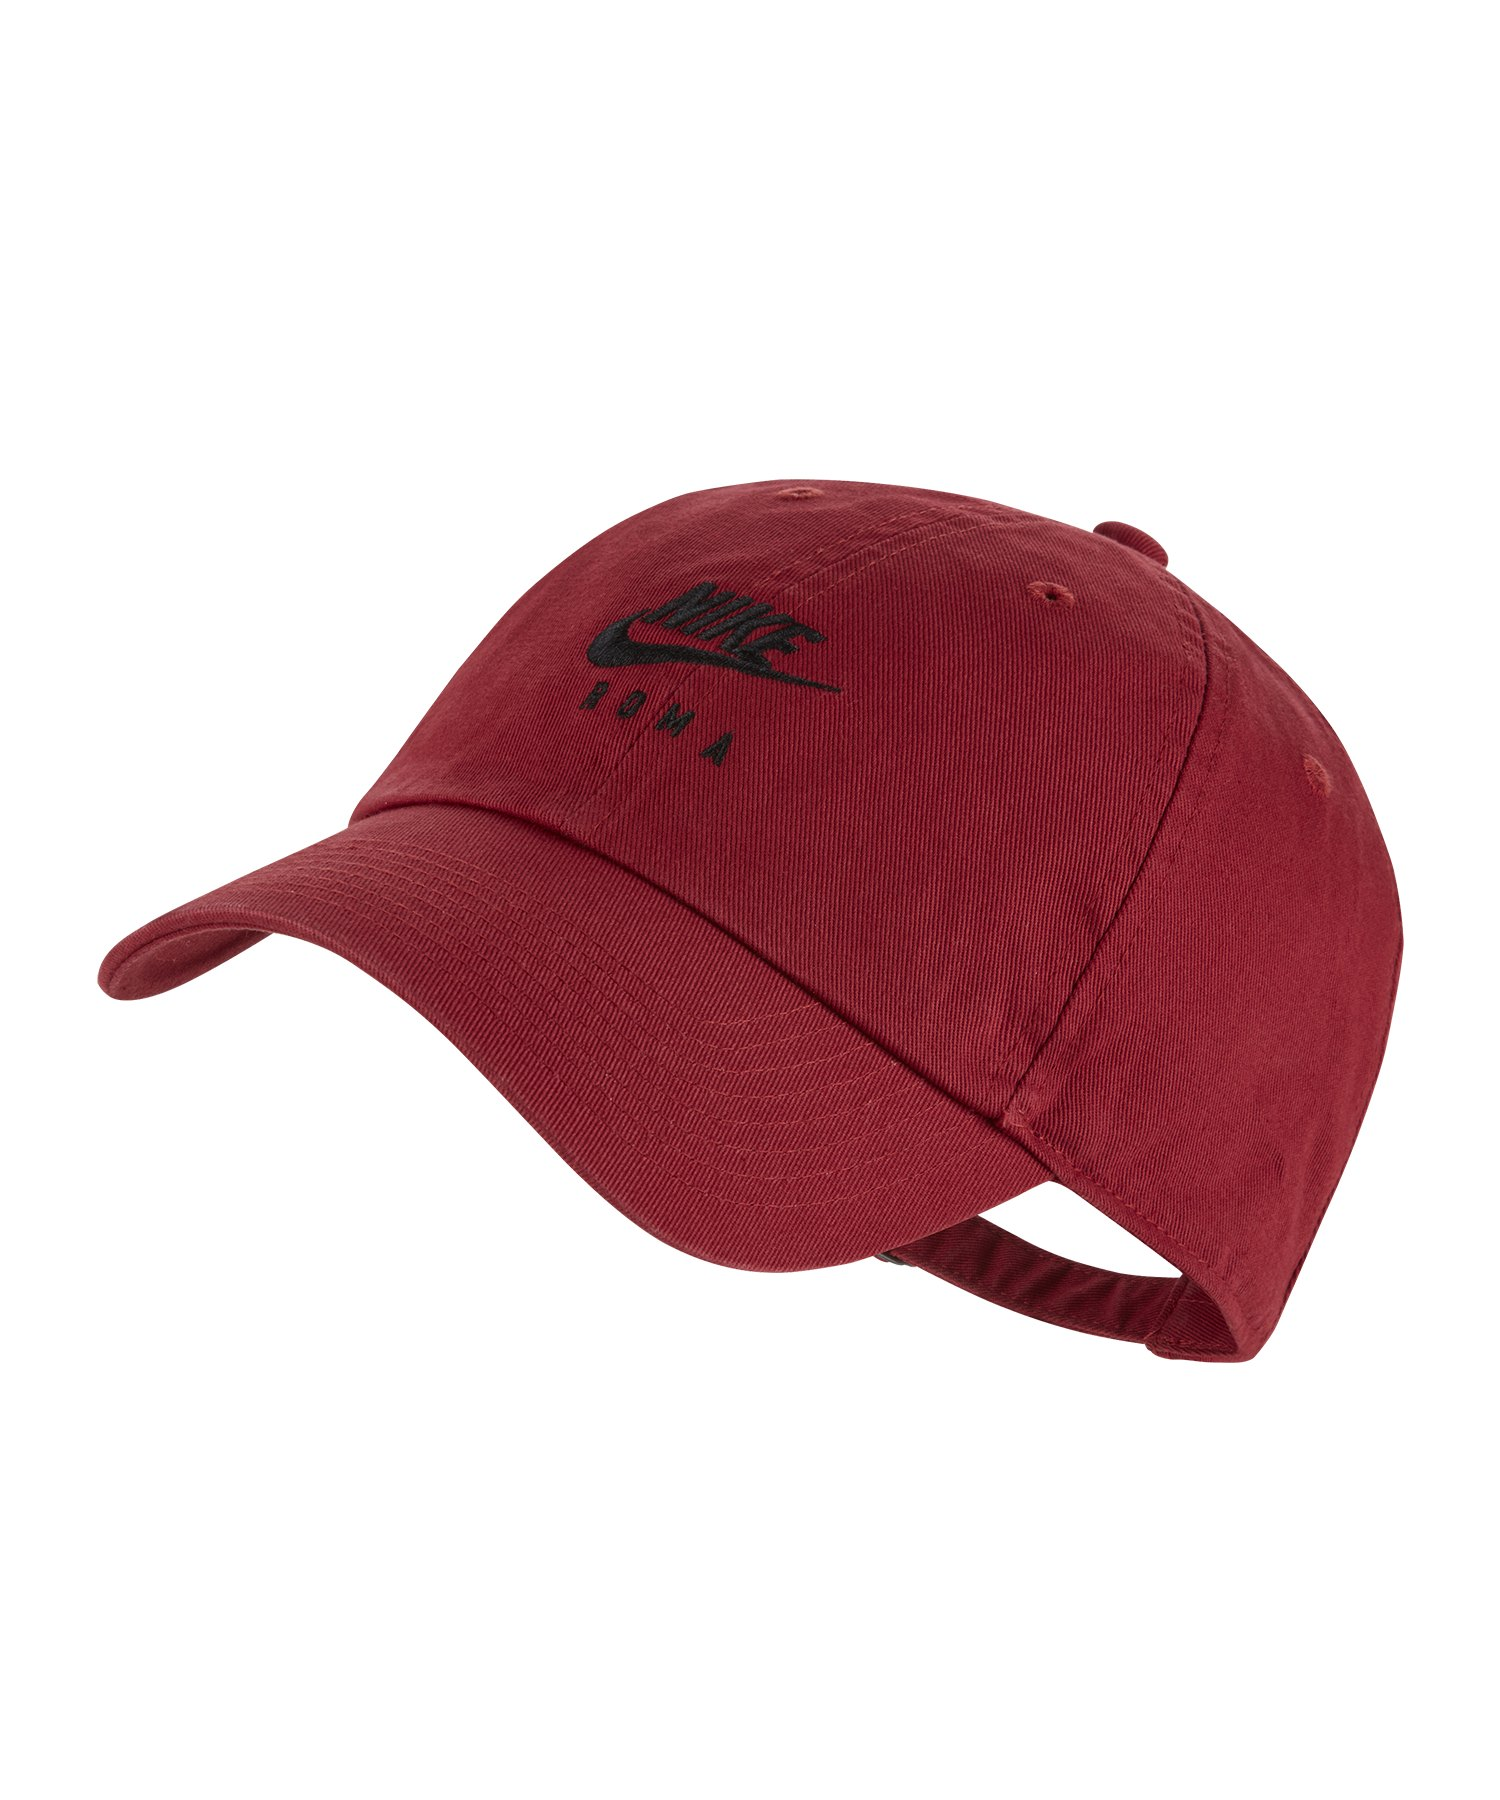 Nike AS Rom Heritage86 Cap Kappe Rot F613 - rot